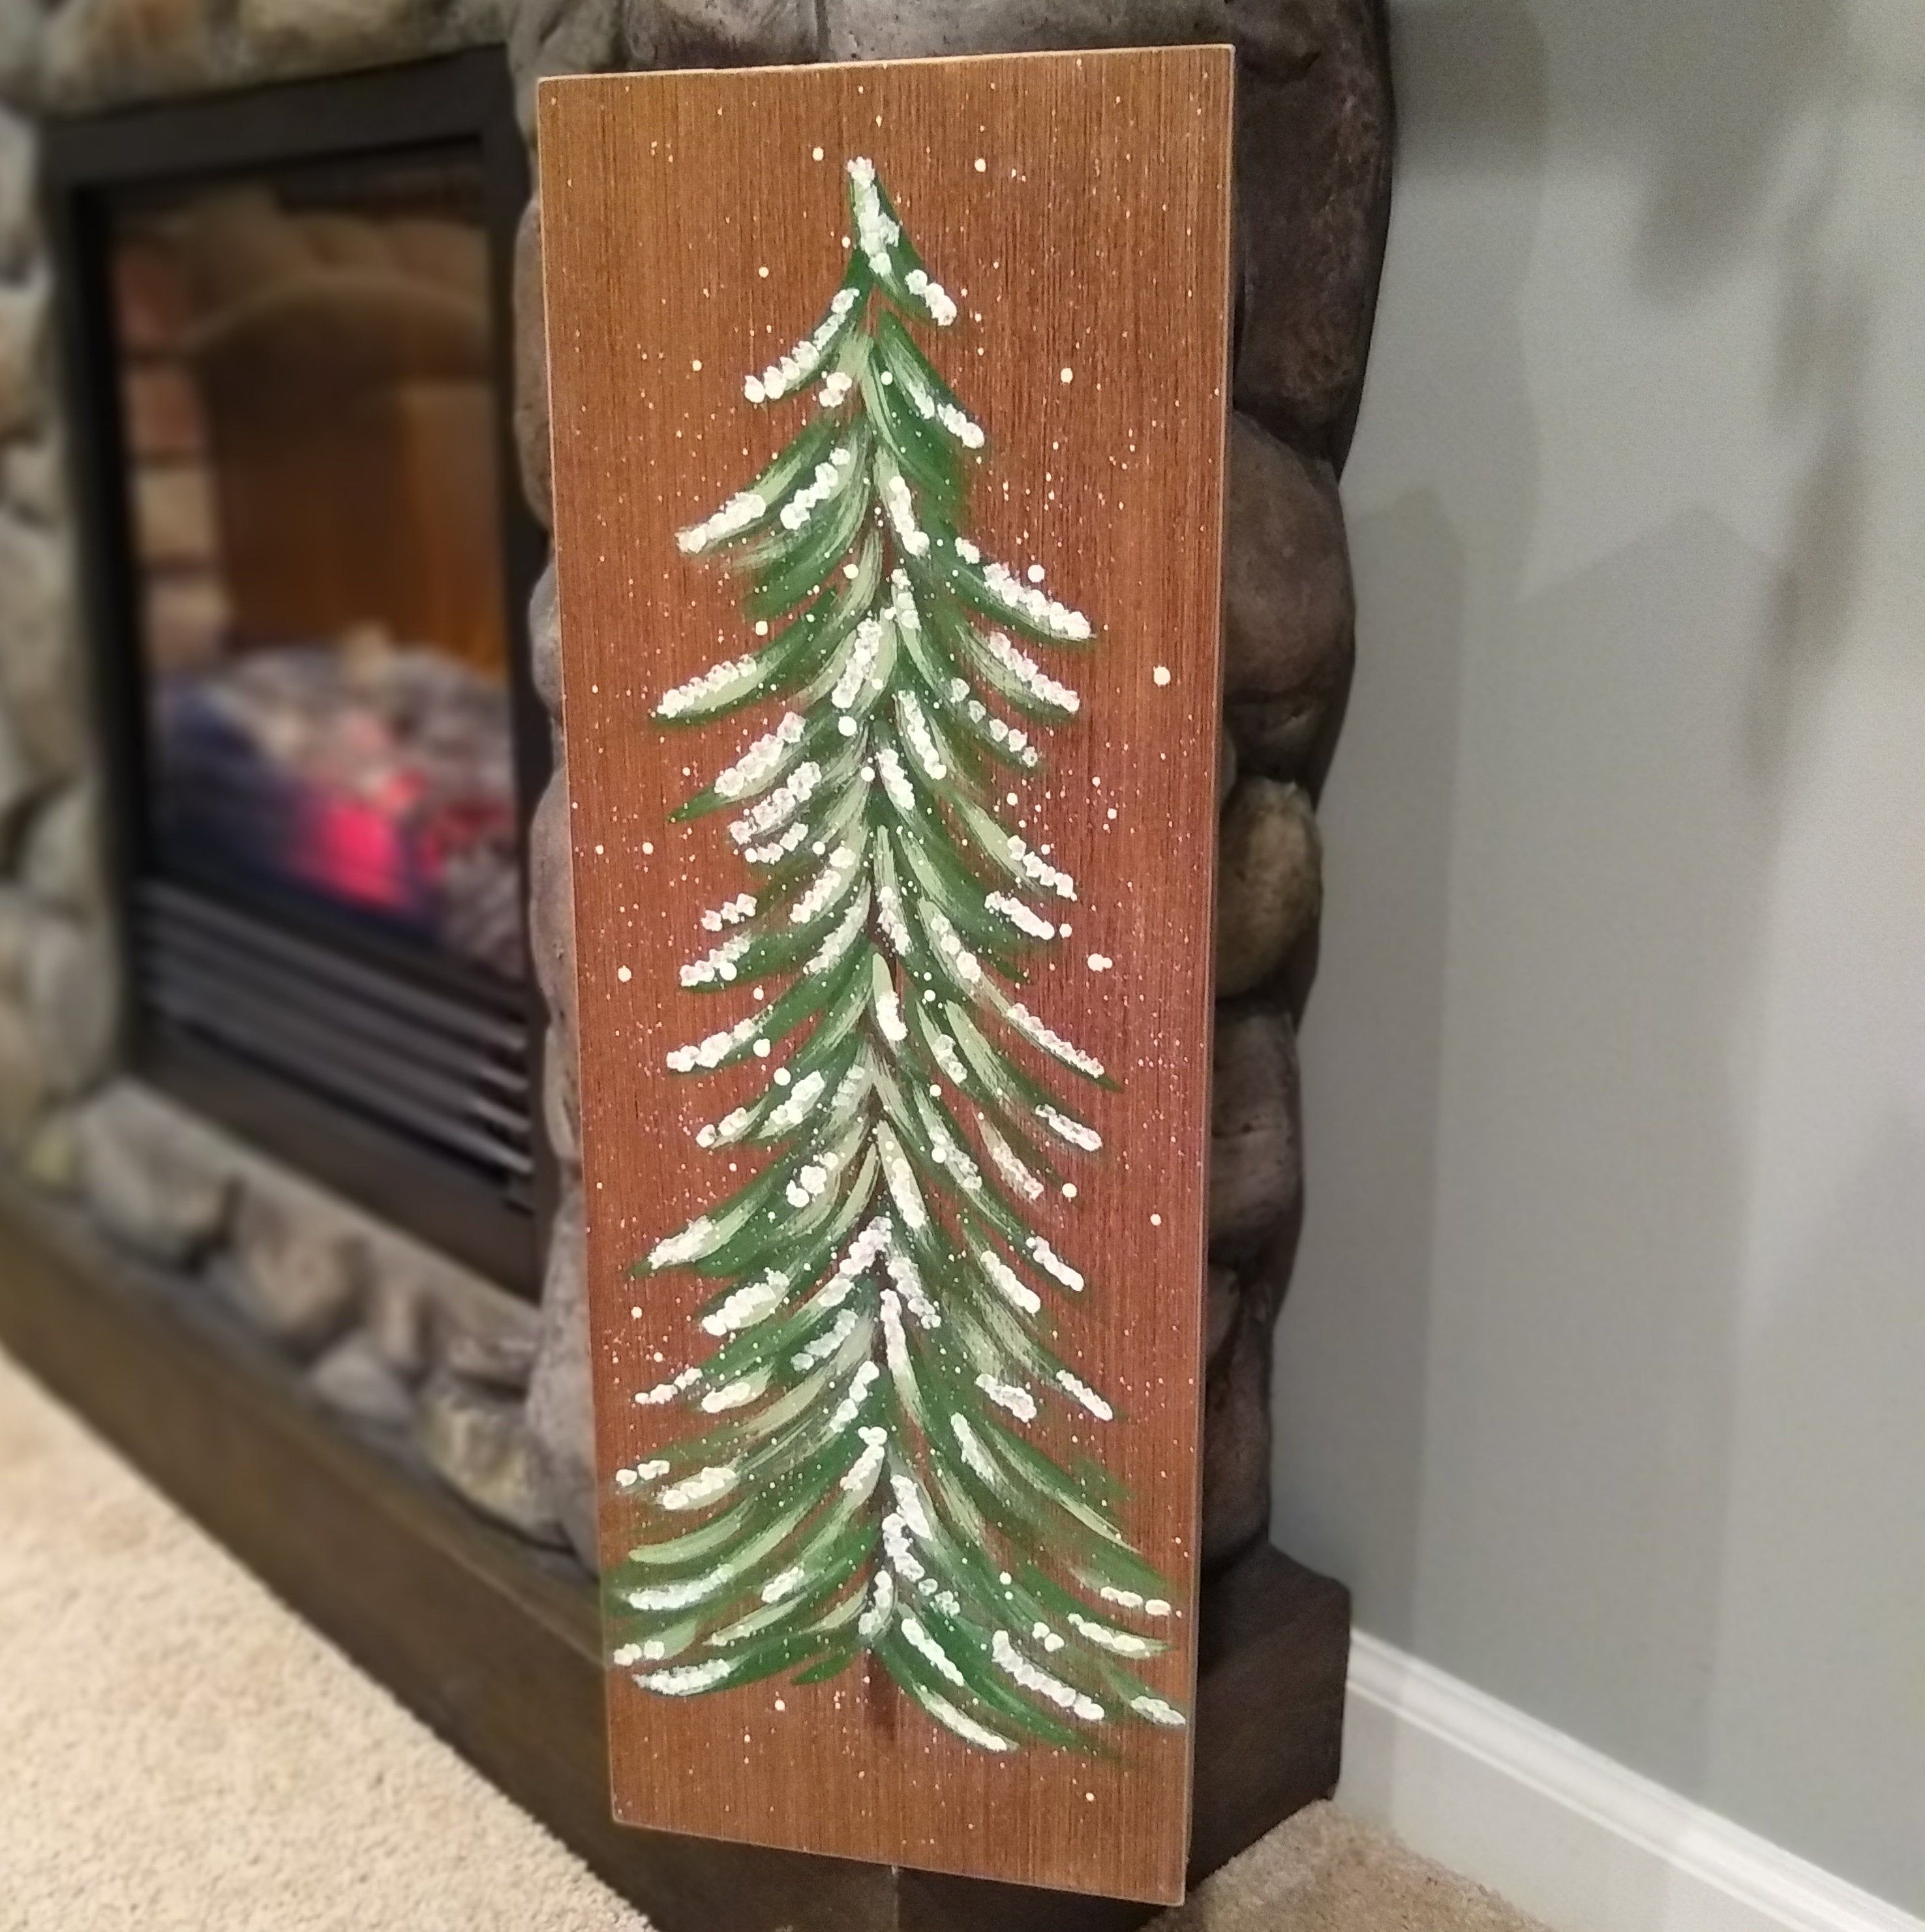 Pine Tree Art Farmhouse Decor Winter Home Decor Christmas Tree Sign Winter Tree Decor Christmas Mantel Decor Log Cabin Decor With Images Kid Room Decor Pine Tree Art Holiday Diy